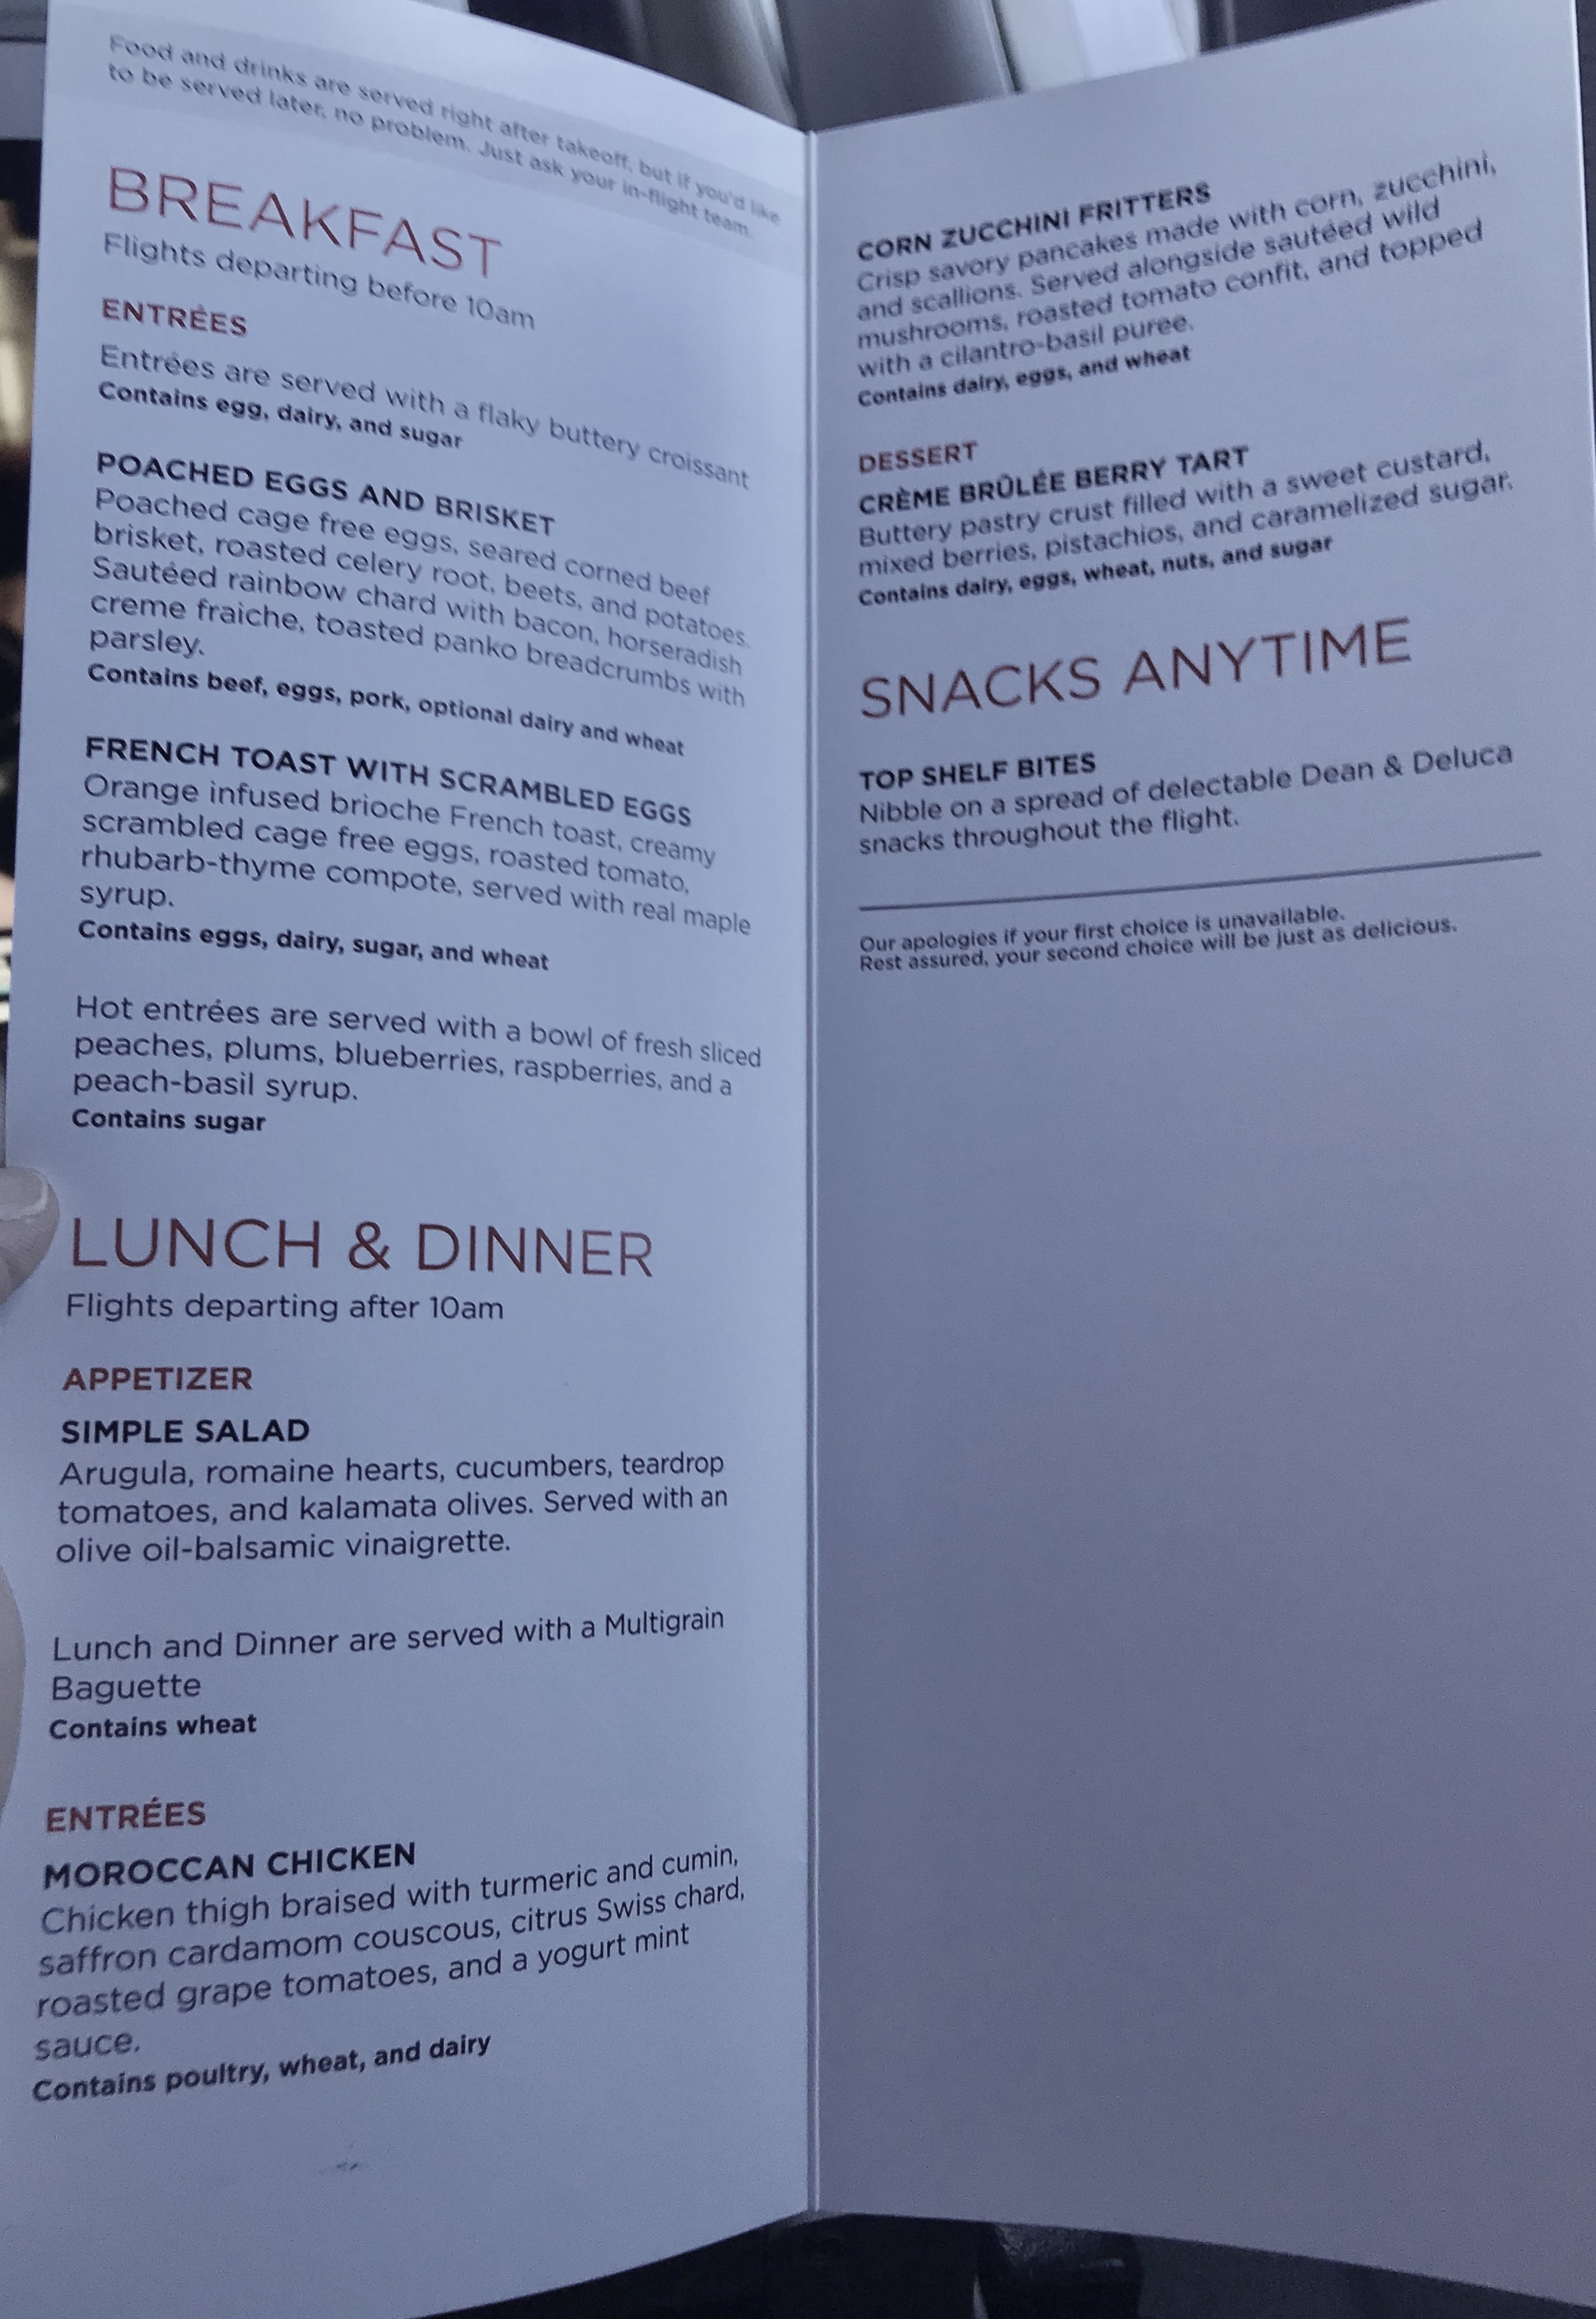 Virgin America in-flight First Class Menu